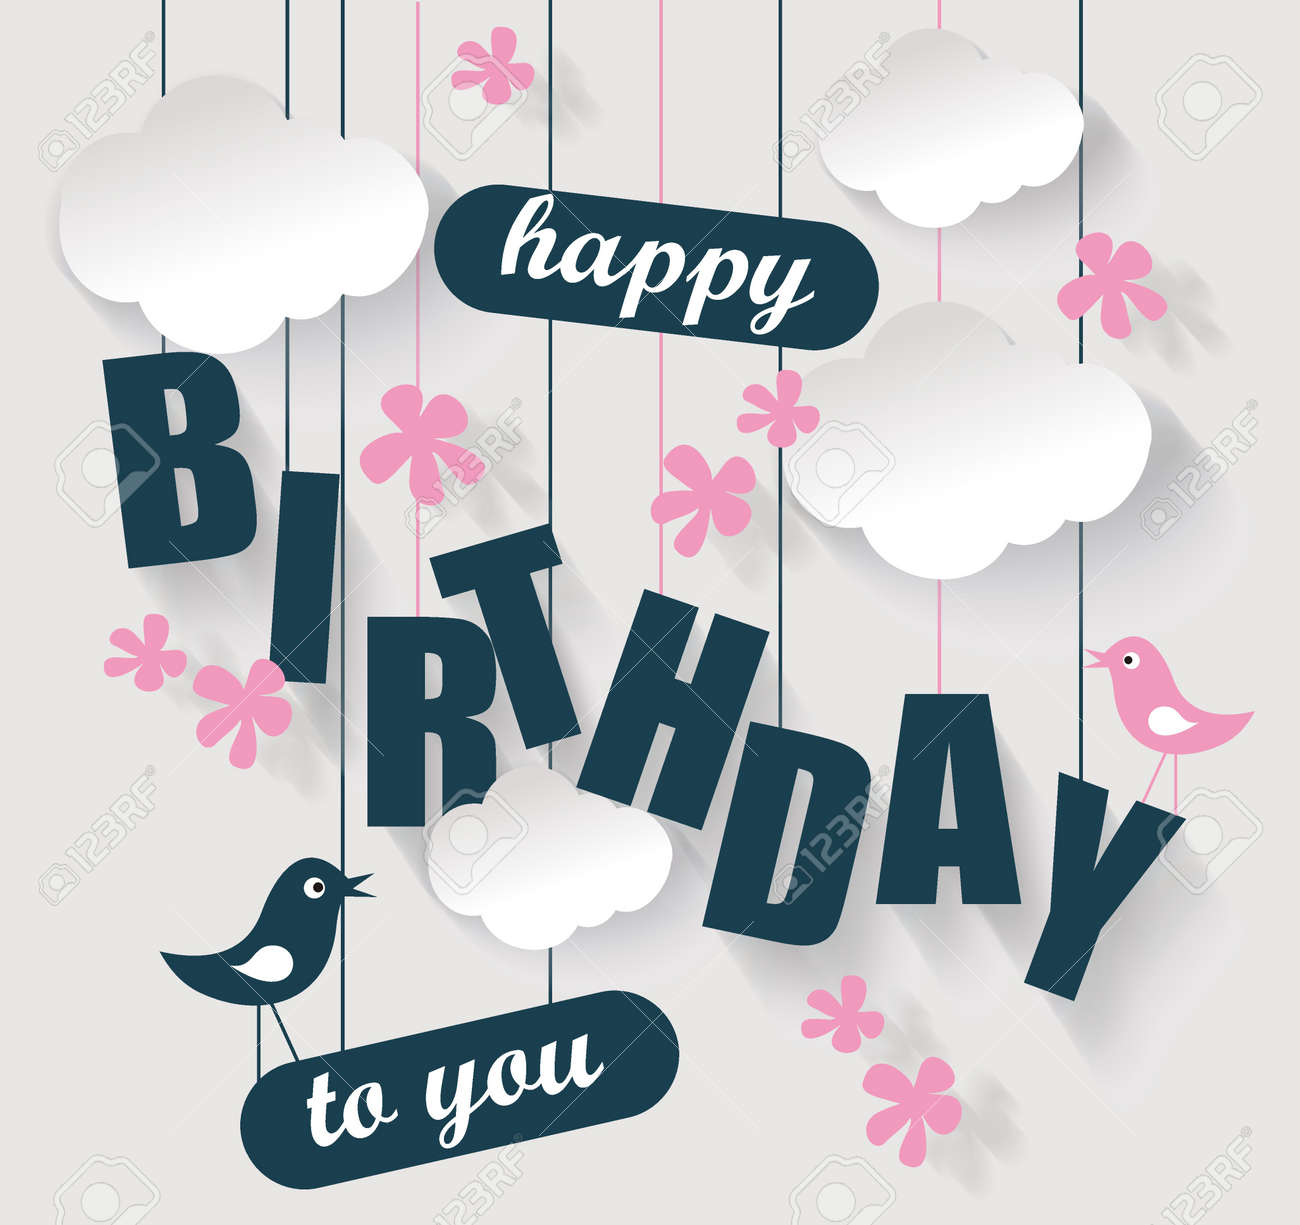 Happy birthday card with clouds and birds. Vector holiday illustration. - 65792634